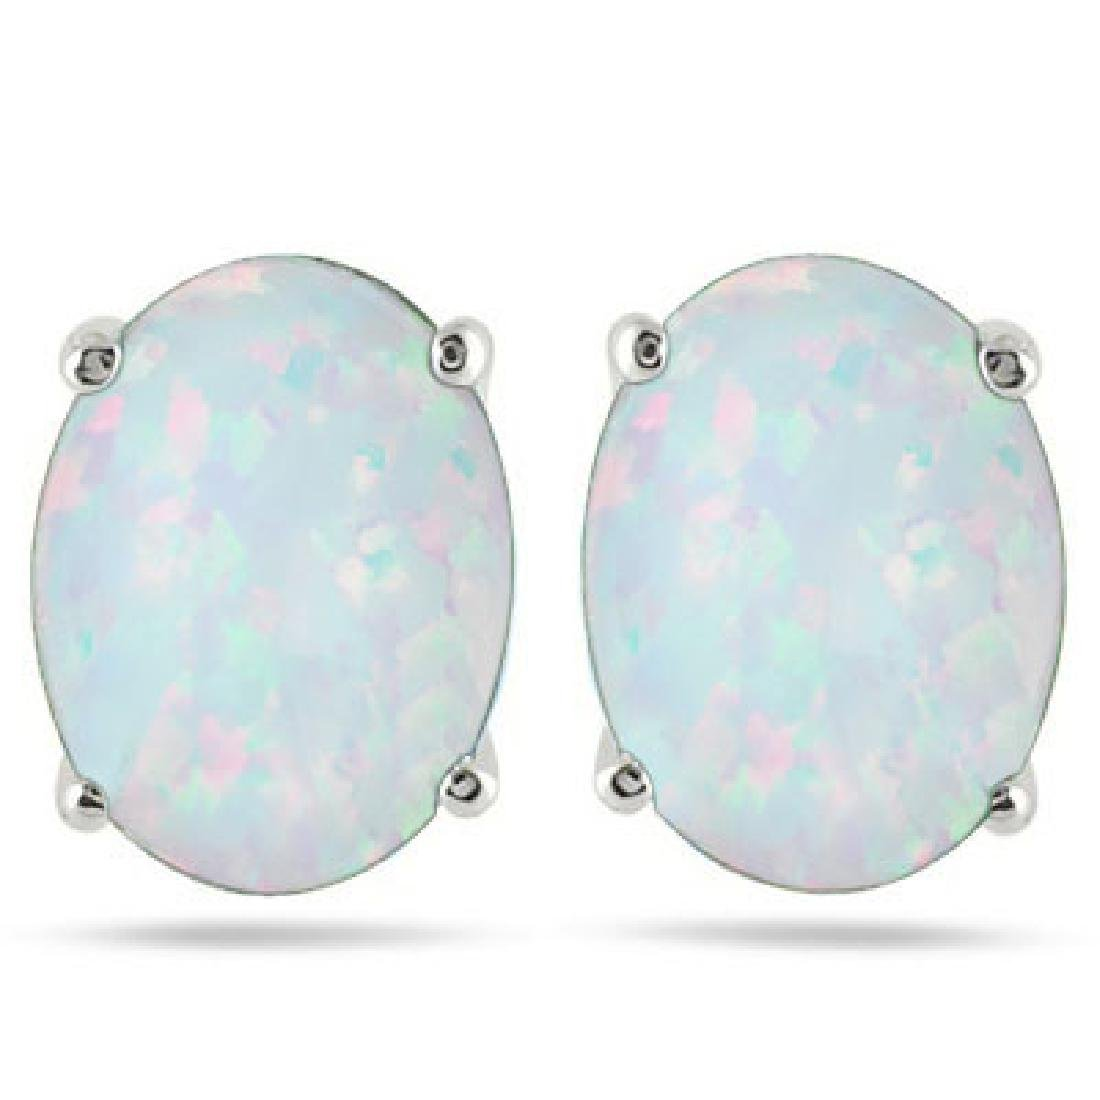 PRETTY OVAL CUT FIRE OPAL SOLITAIRE EARRINGS